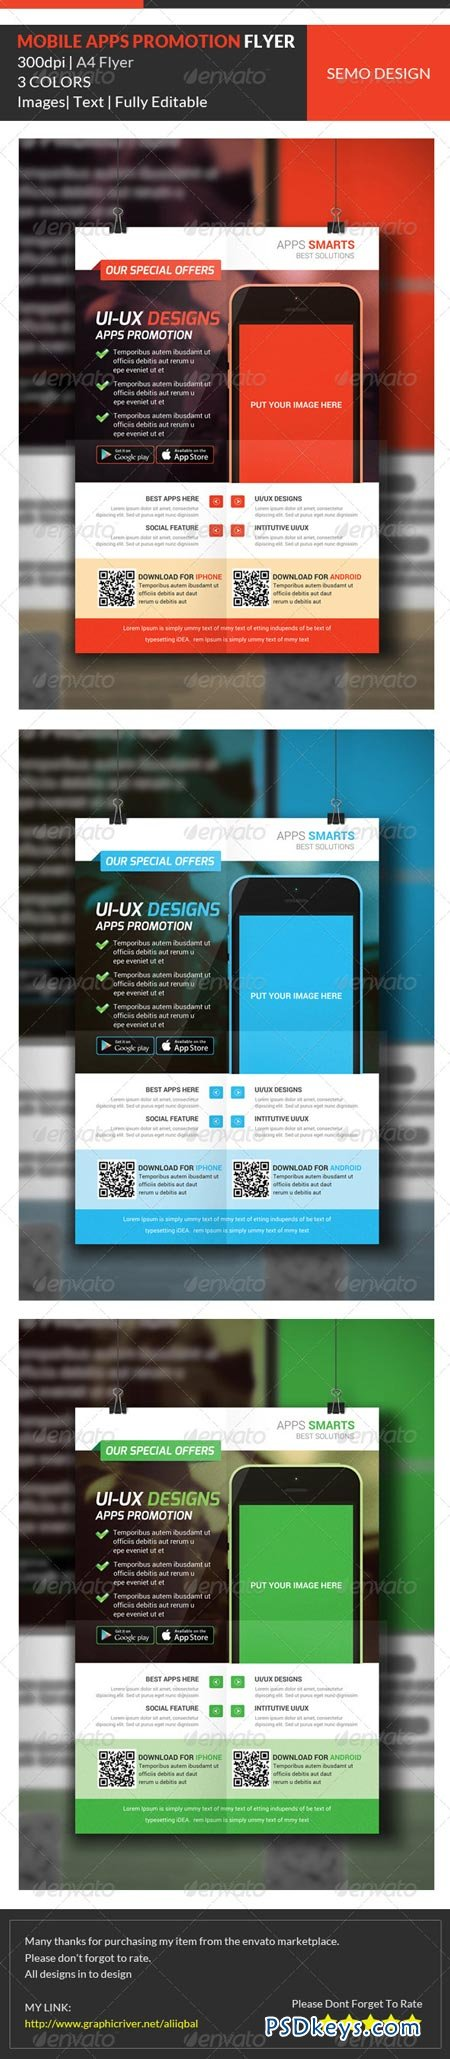 mobile apps promotion flyer template  mobile apps promotion flyer template 7097184